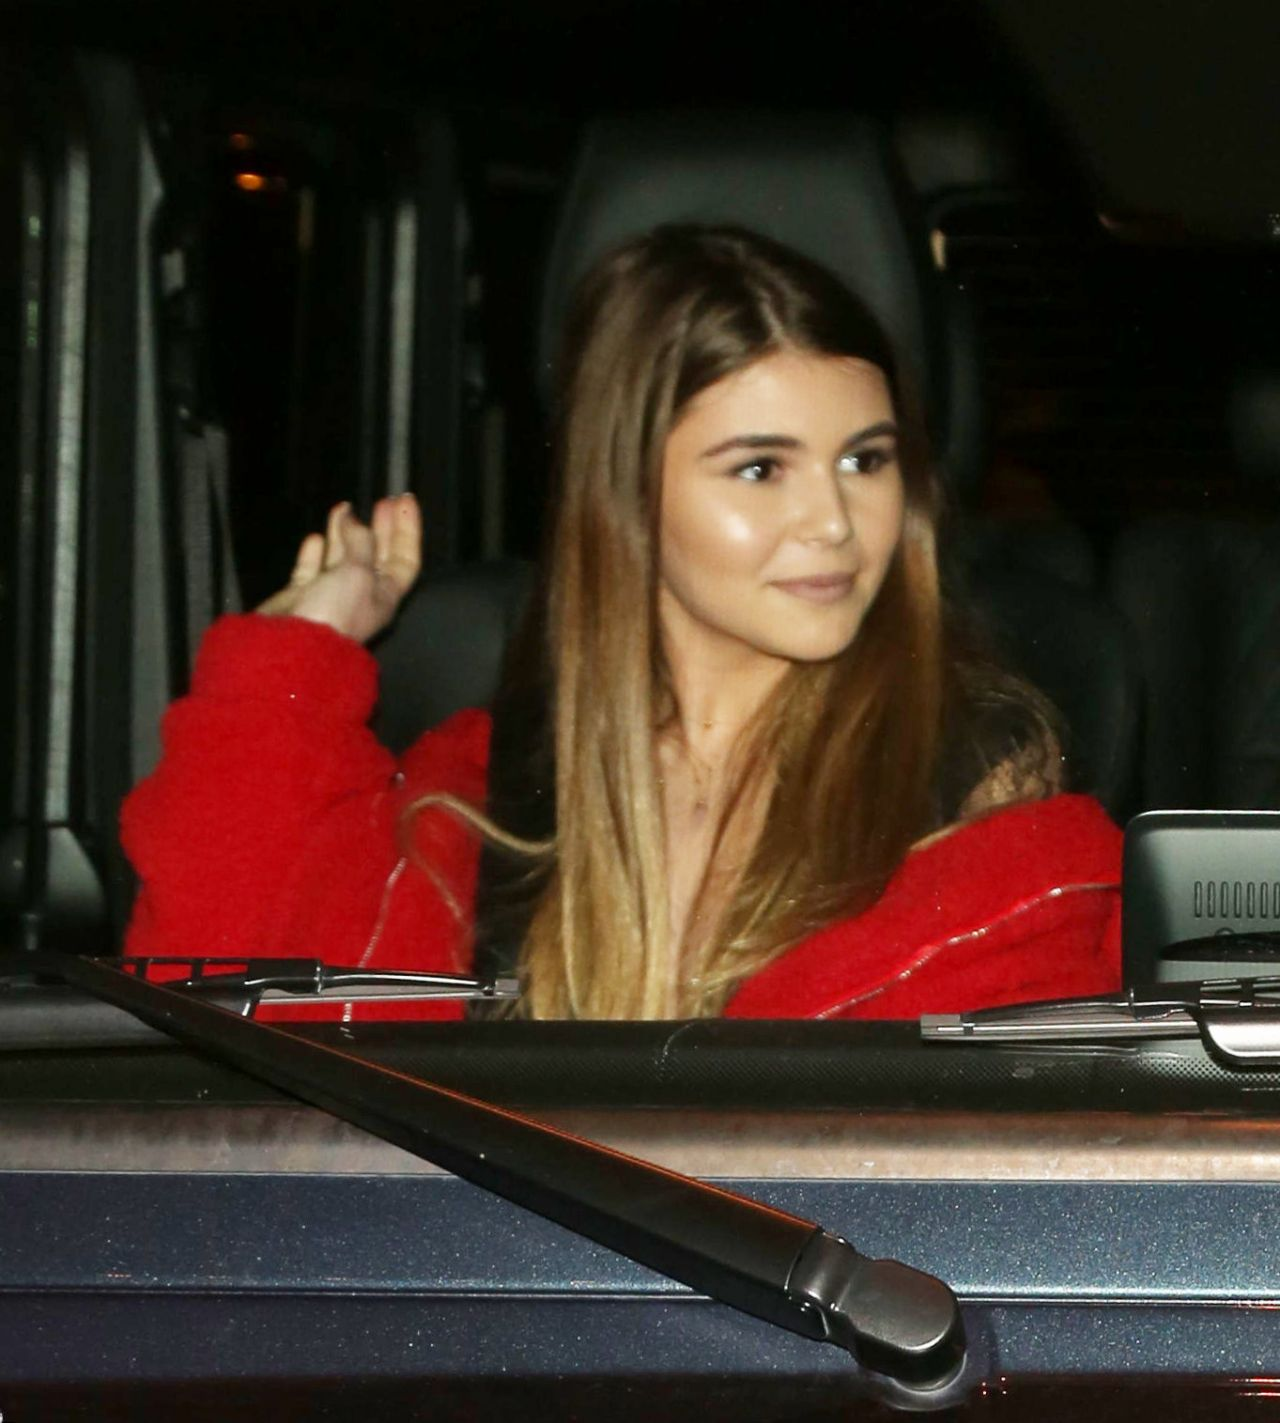 Olivia Jade Giannulli In Red And Black Craig S In West